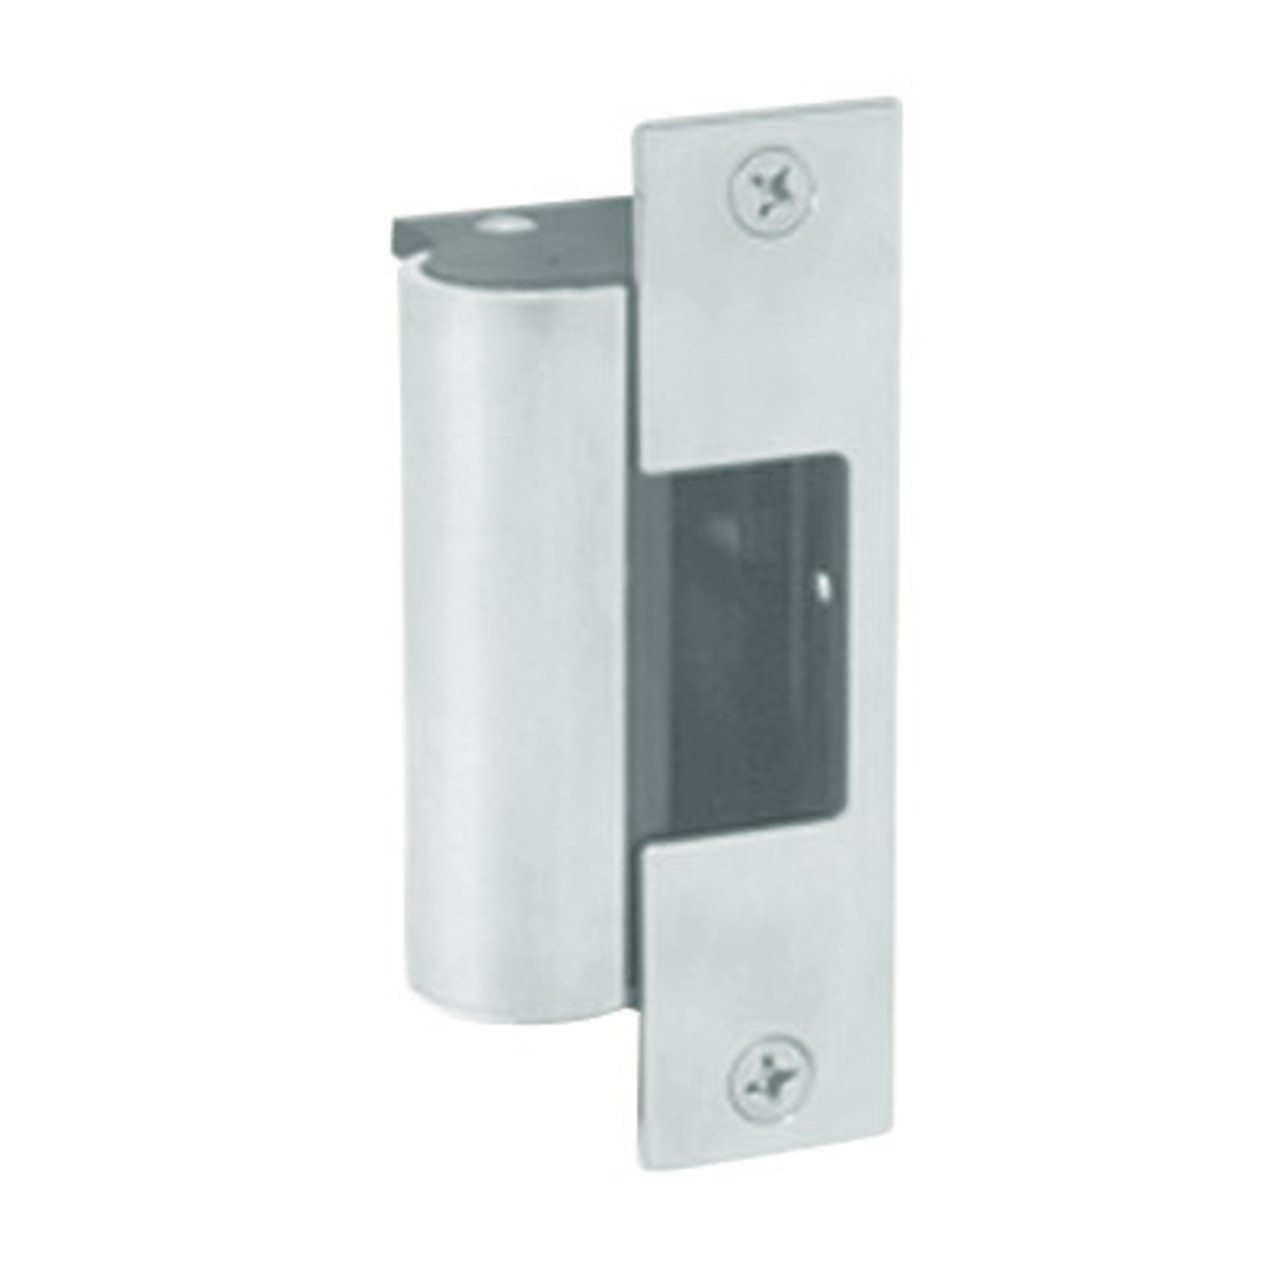 1006-F-629-LBM Hes Fail Safe Electric Strike Body with Latchbolt Monitor in Bright Stainless Steel Finish